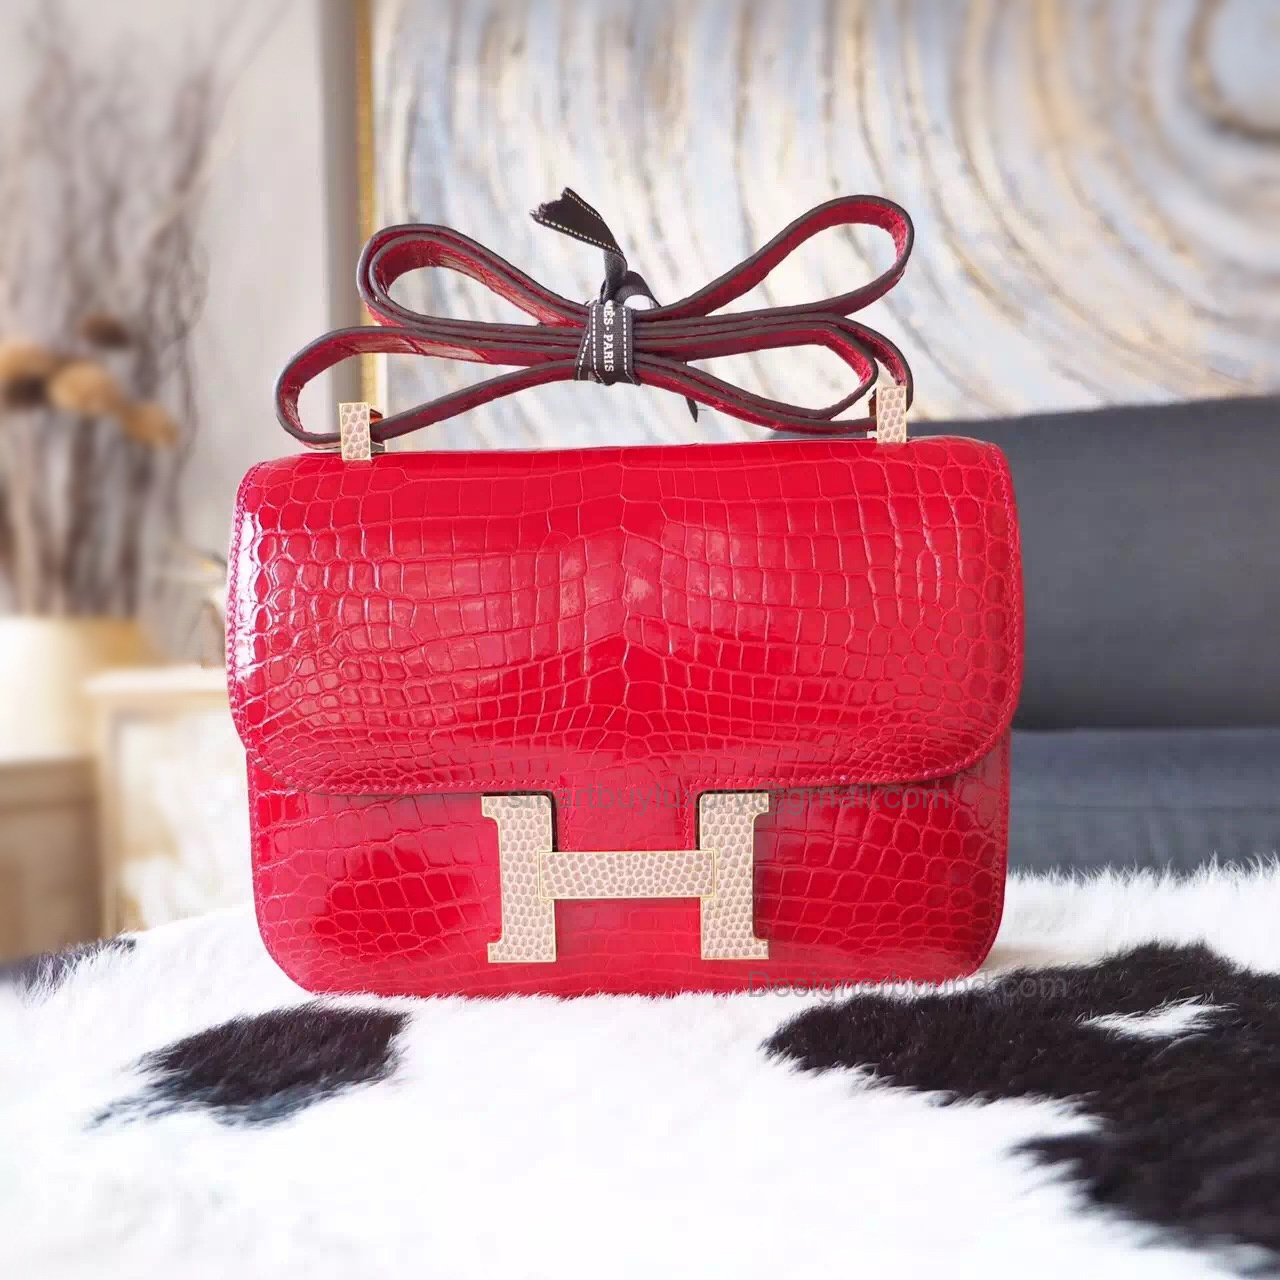 Replica Hermes Constance 23 Bag in ck55 Rouge H Niloticus Shining Crocodile